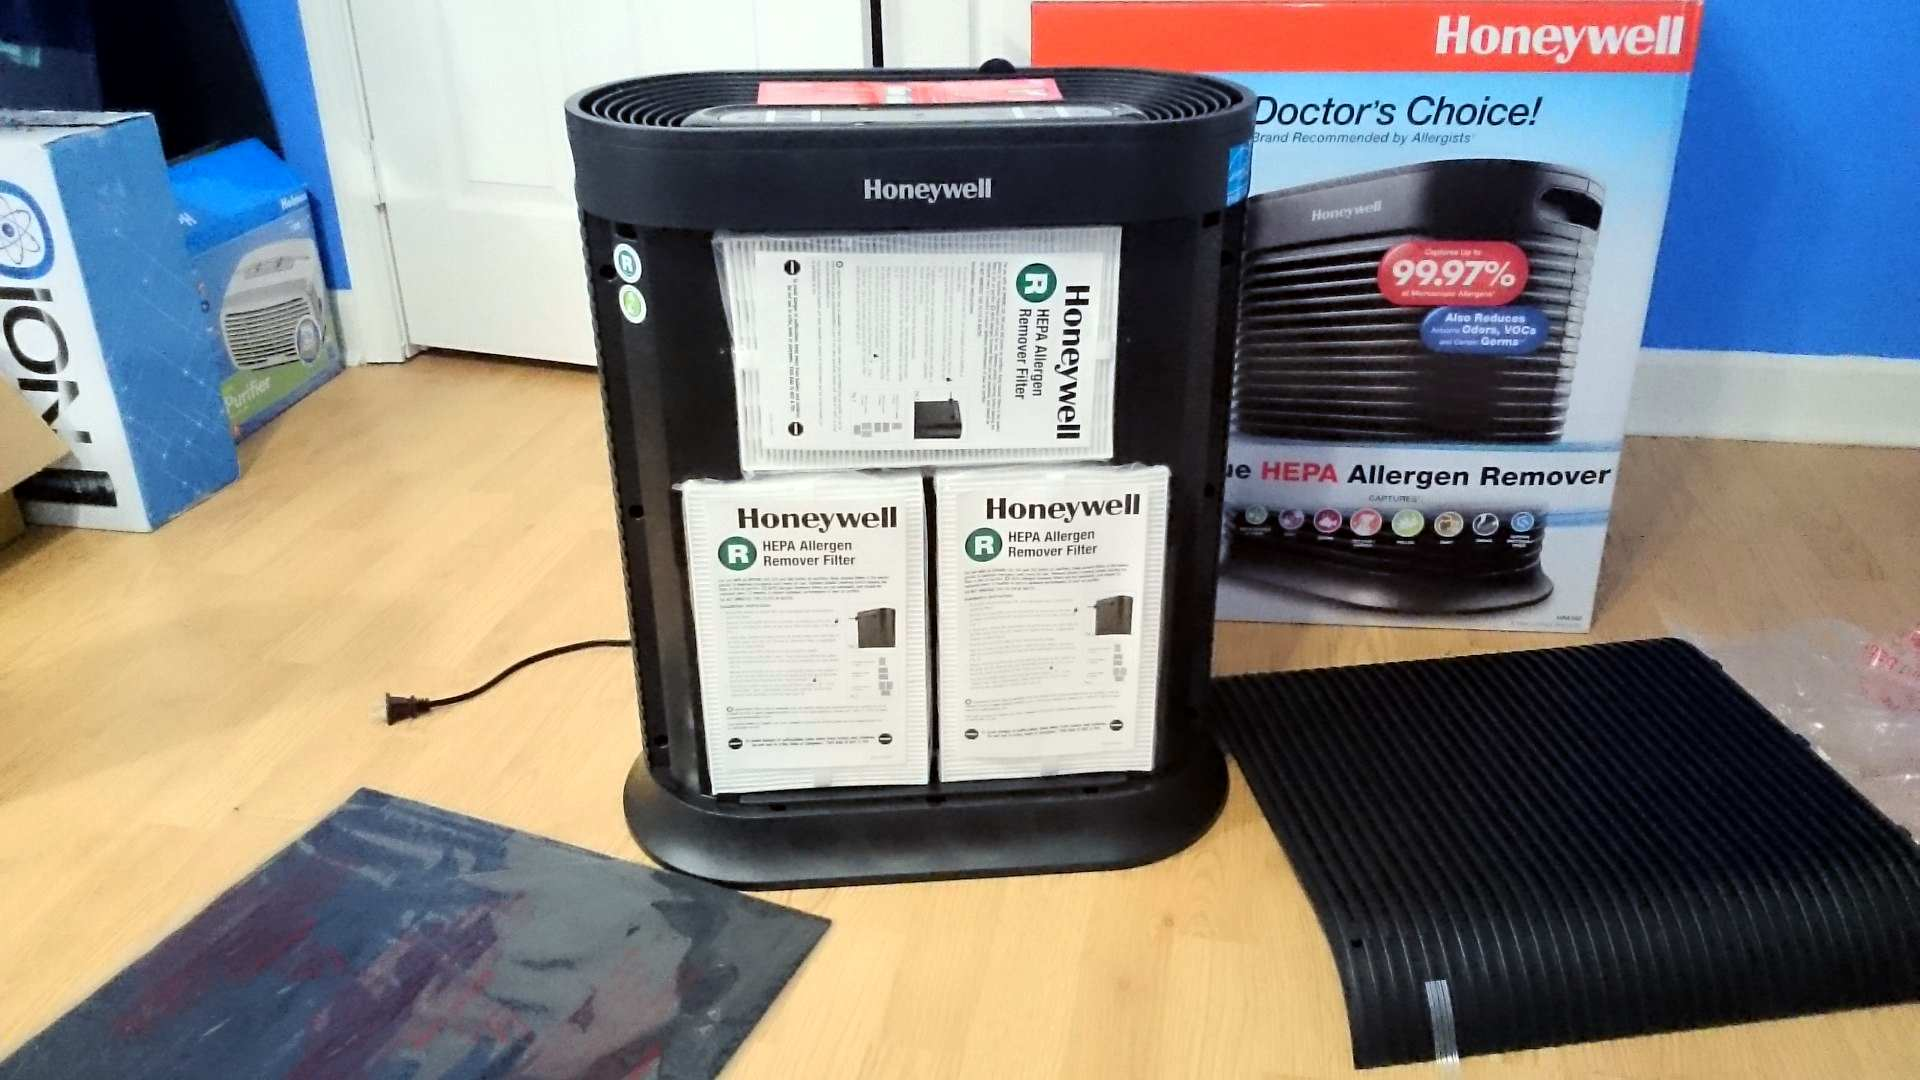 Honeywell HPA300 new filter view image